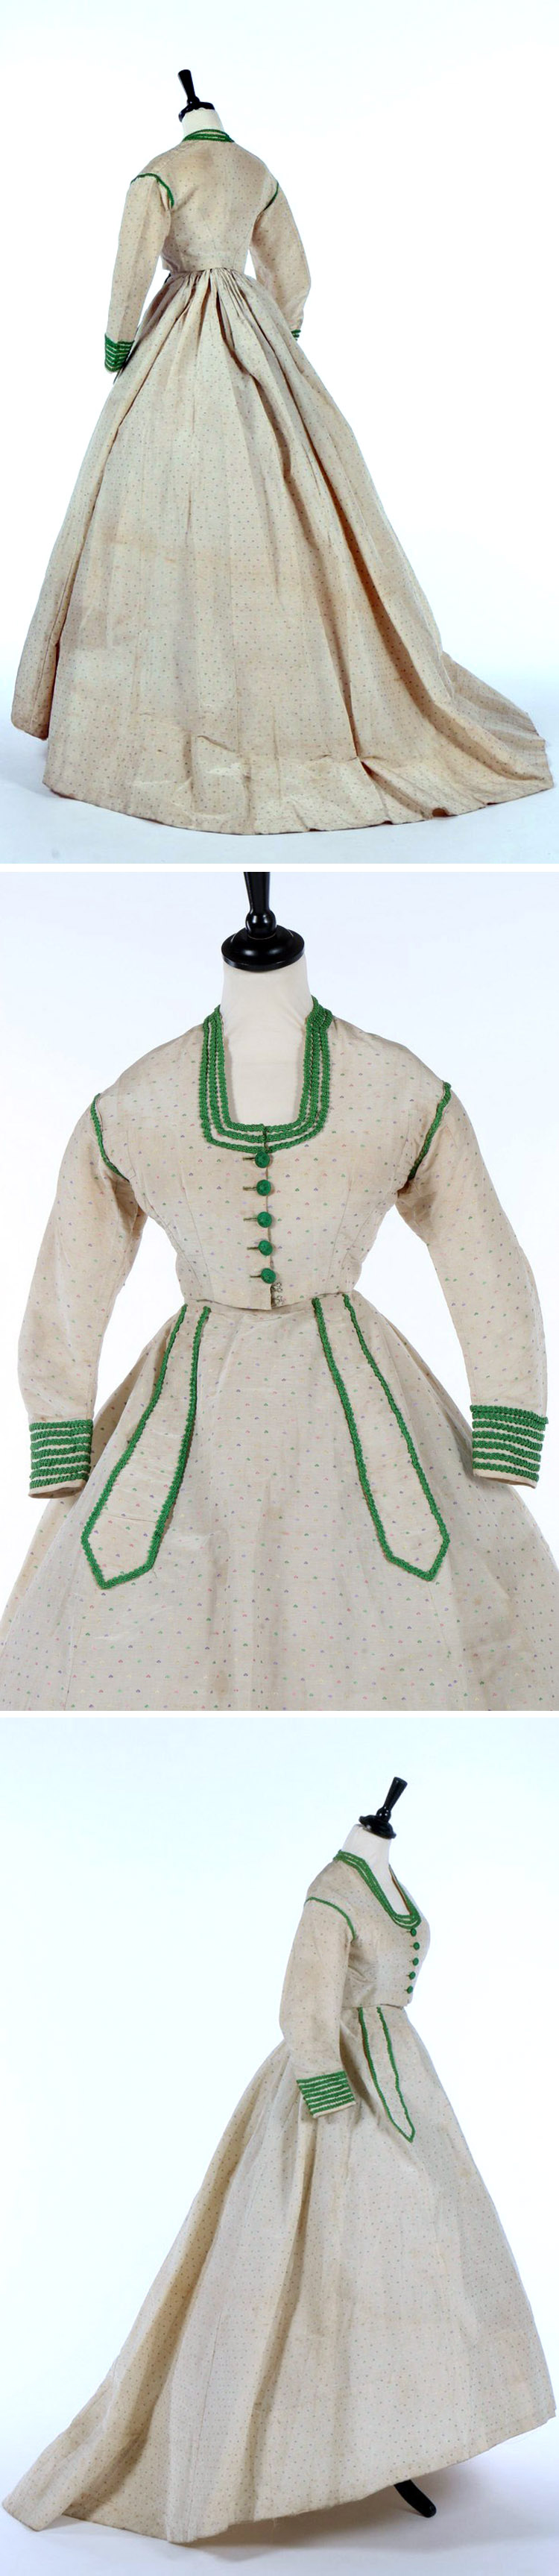 Spotted silk gown ca. 1867. Separate bodice with green braid buttons and cuffs, similar tabs on oval skirt. Kerry Taylor Auctions